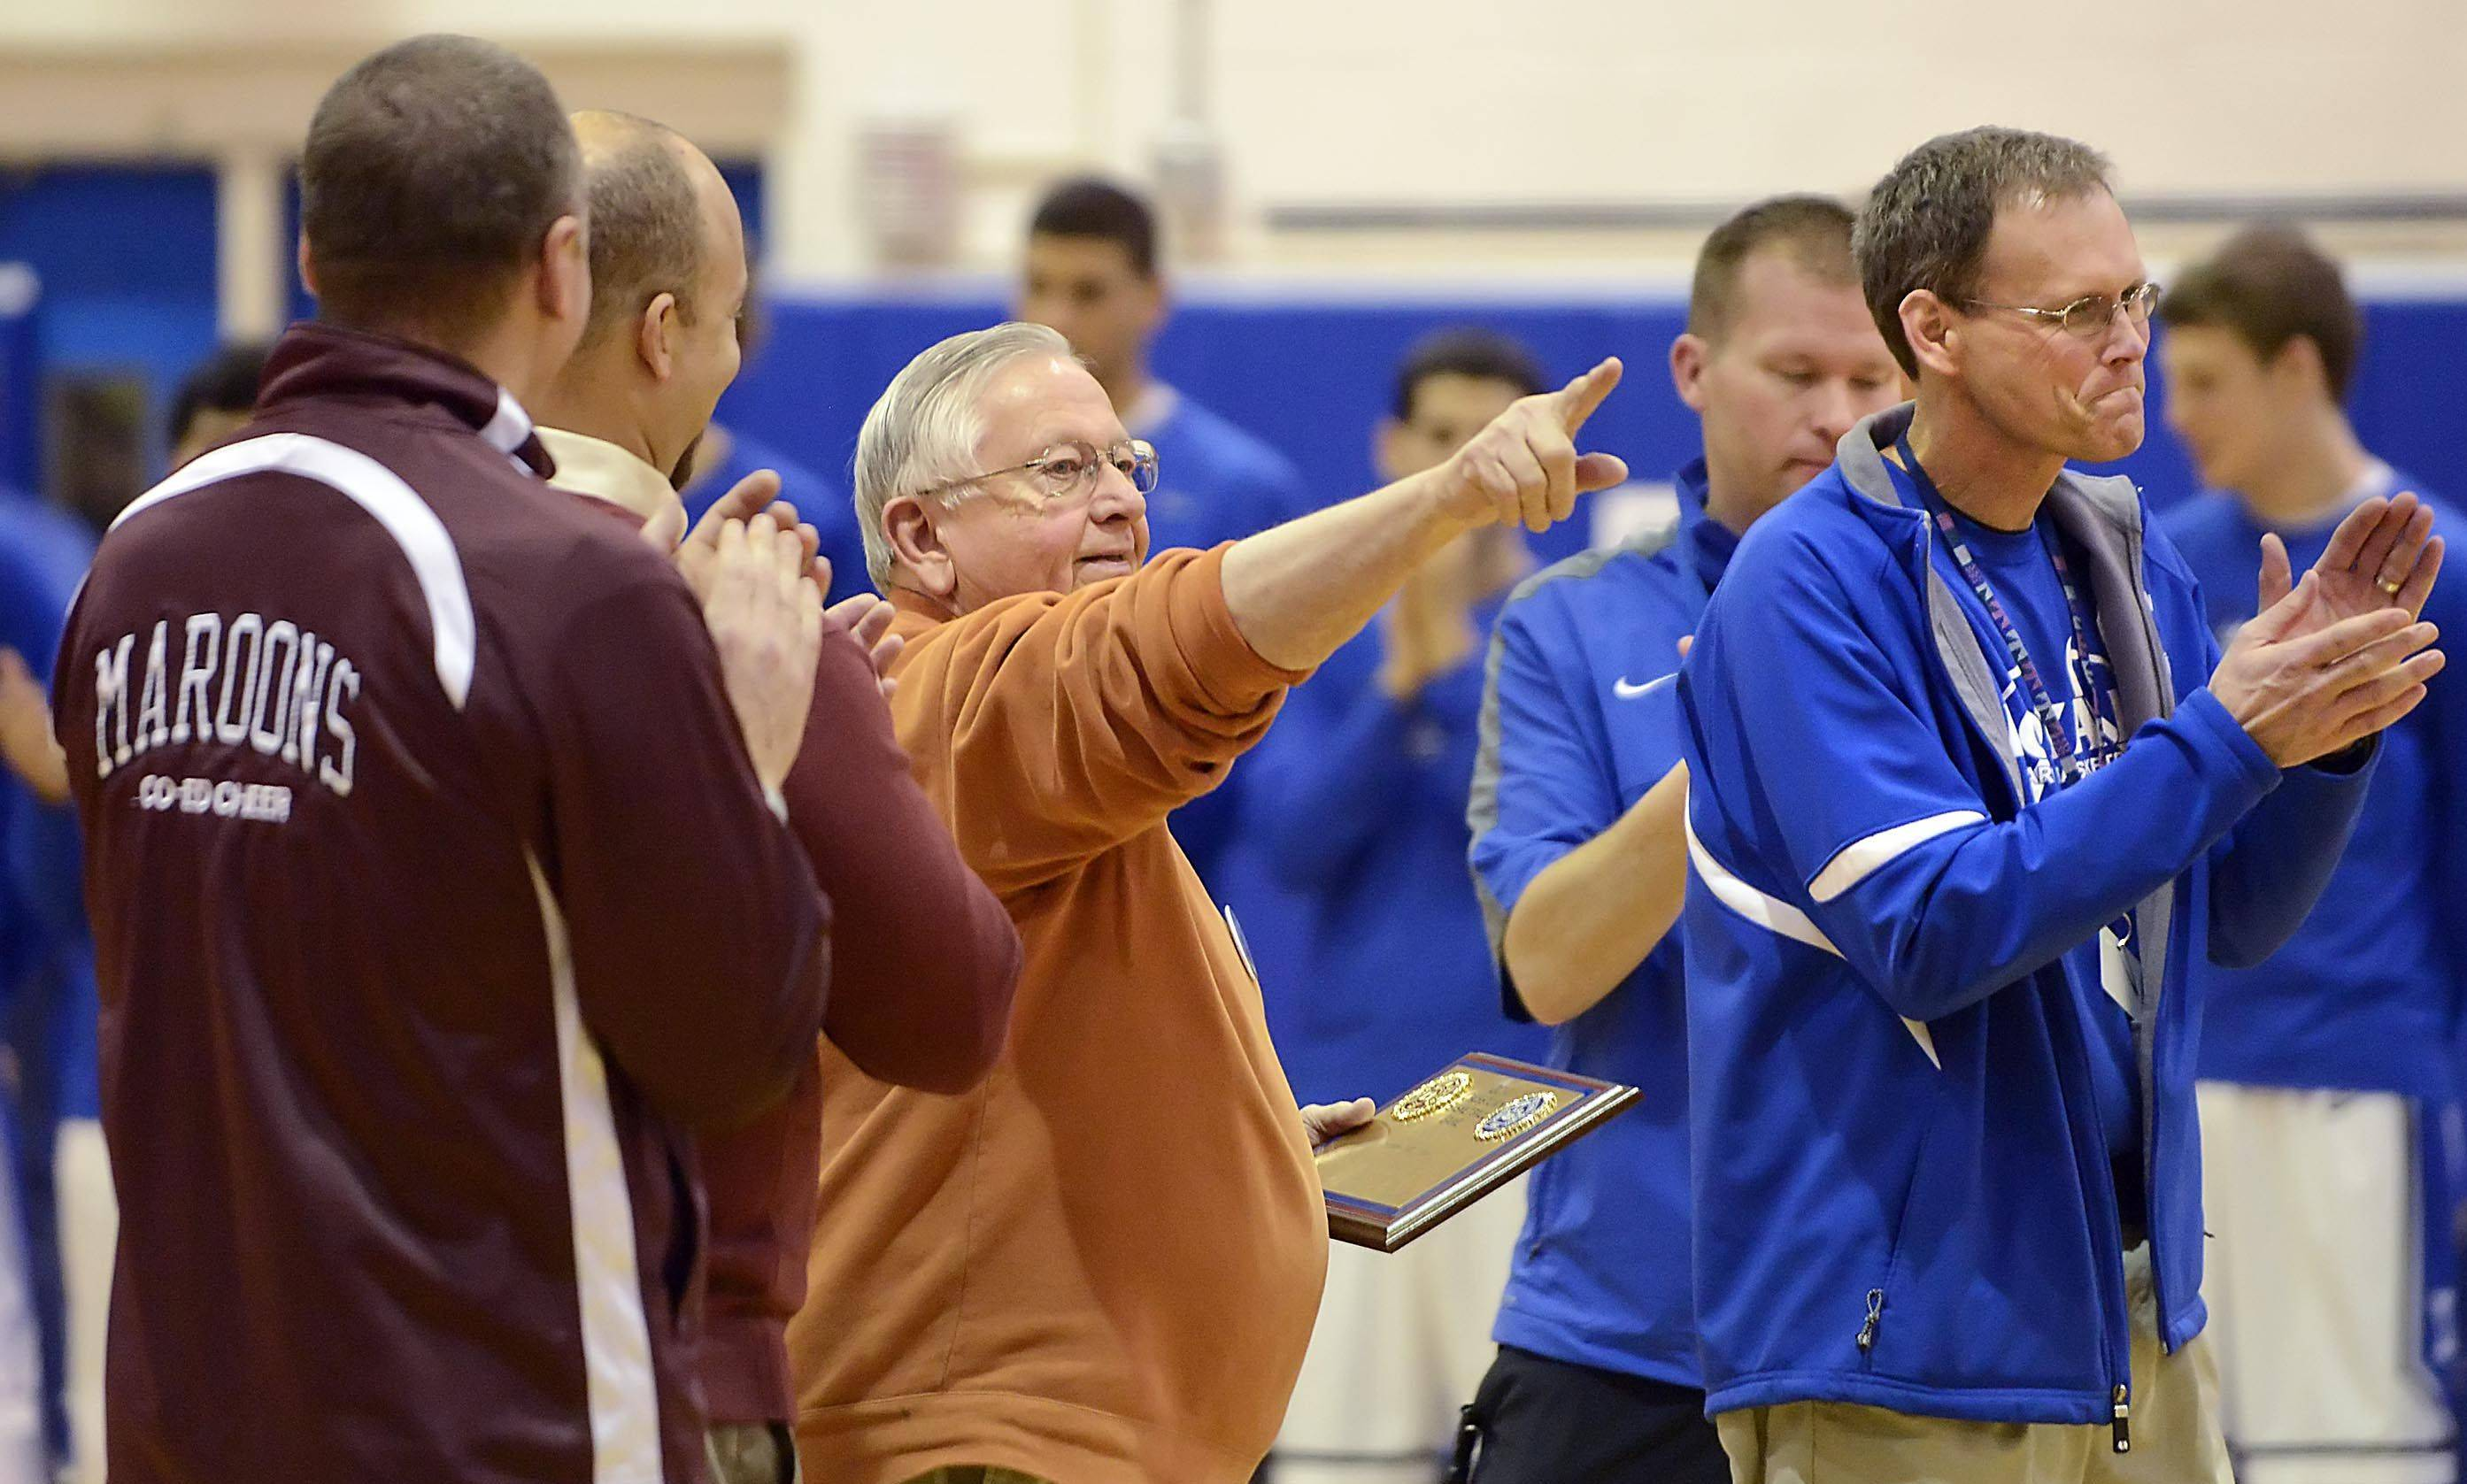 Elgin Superfan Dave St. John points to the crowd after receiving a plaque for his decades of support for Elgin teams Friday at Larkin High School in Elgin.